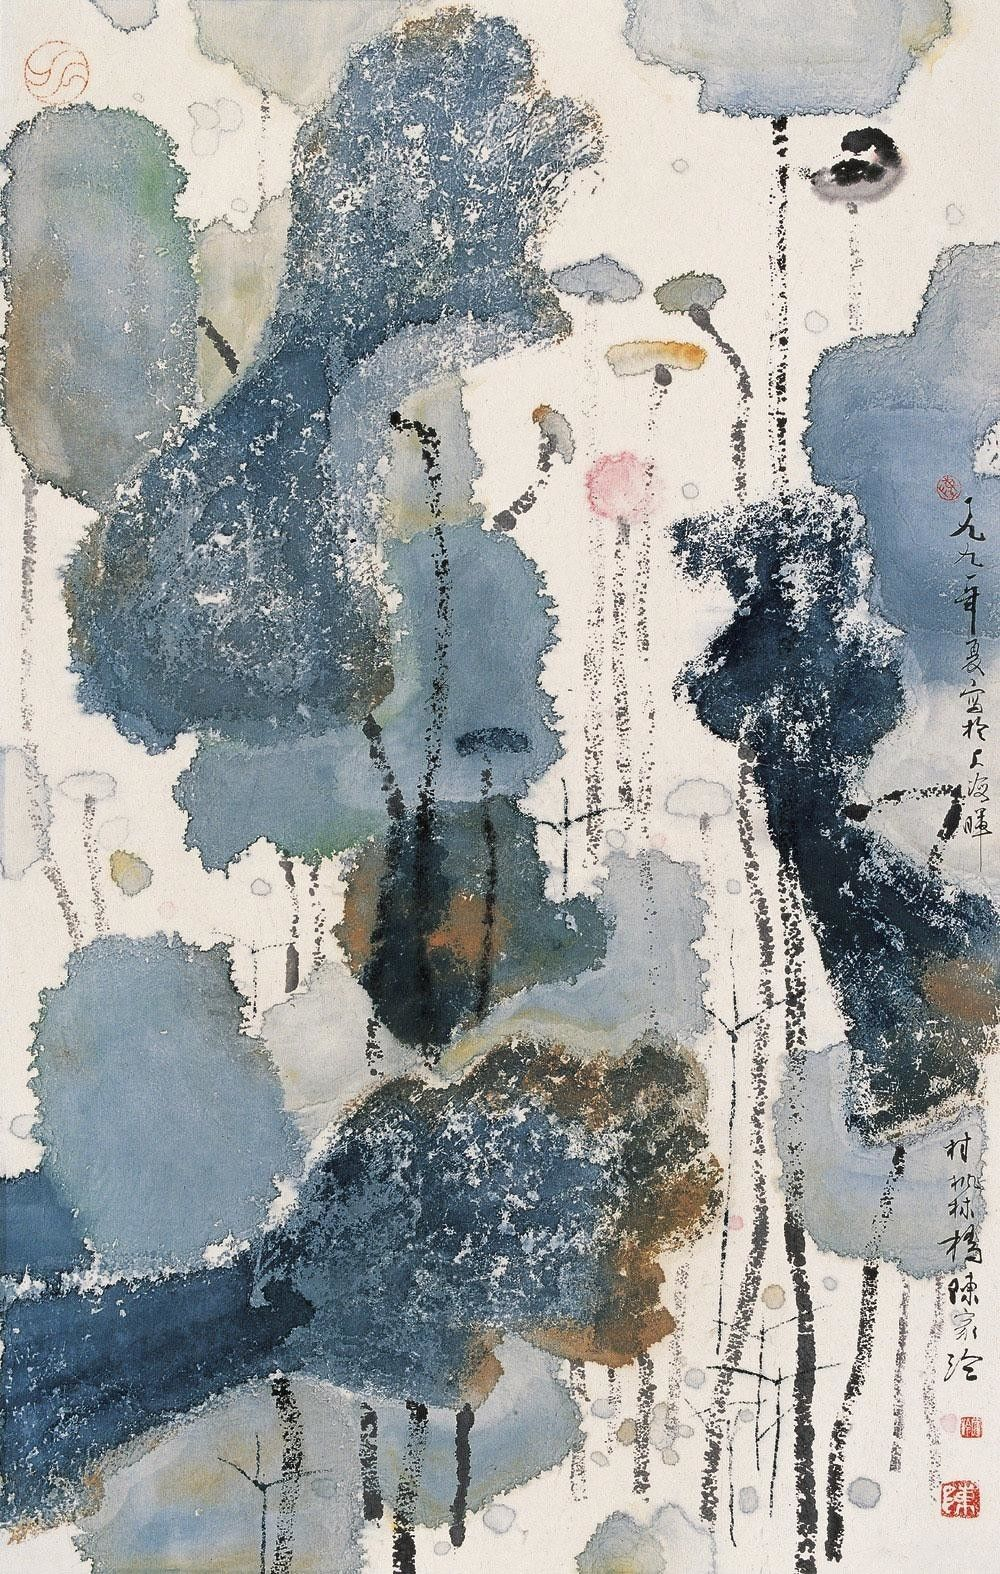 40 Ink Painting Ideas For Inspiration: 陈家泠 Chen Jialing (1937-)